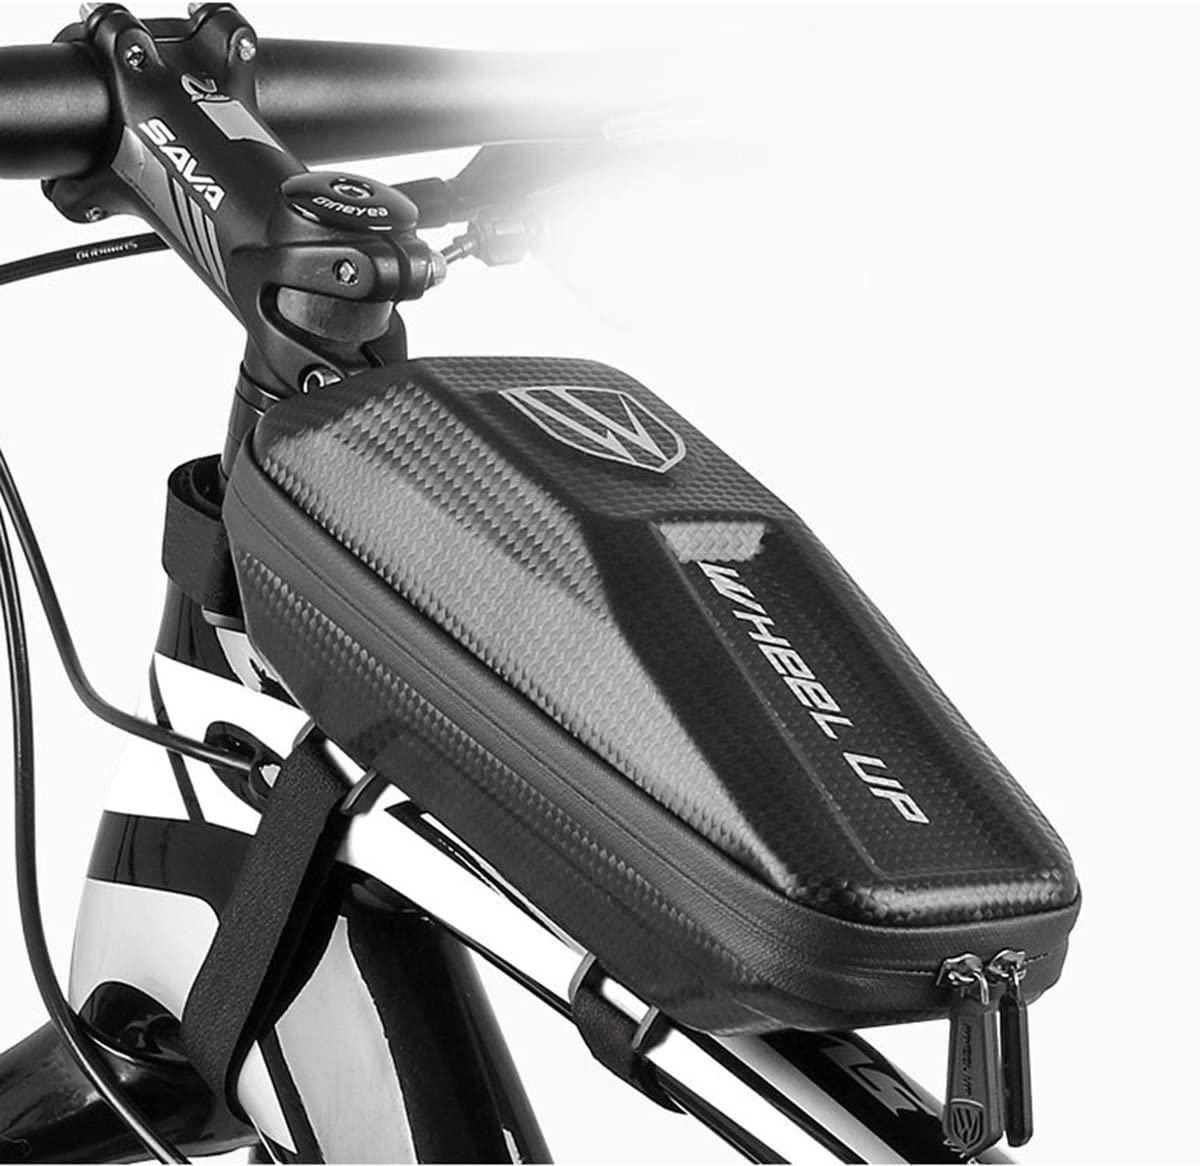 Yuehuam Bike Front Frame Bag Waterproof Top Tube Phone Storage Pouch Cycling Pannier Mobile Phone Mount Pack Large Capacity Cellphone Case for Outdoor Sport Accessories